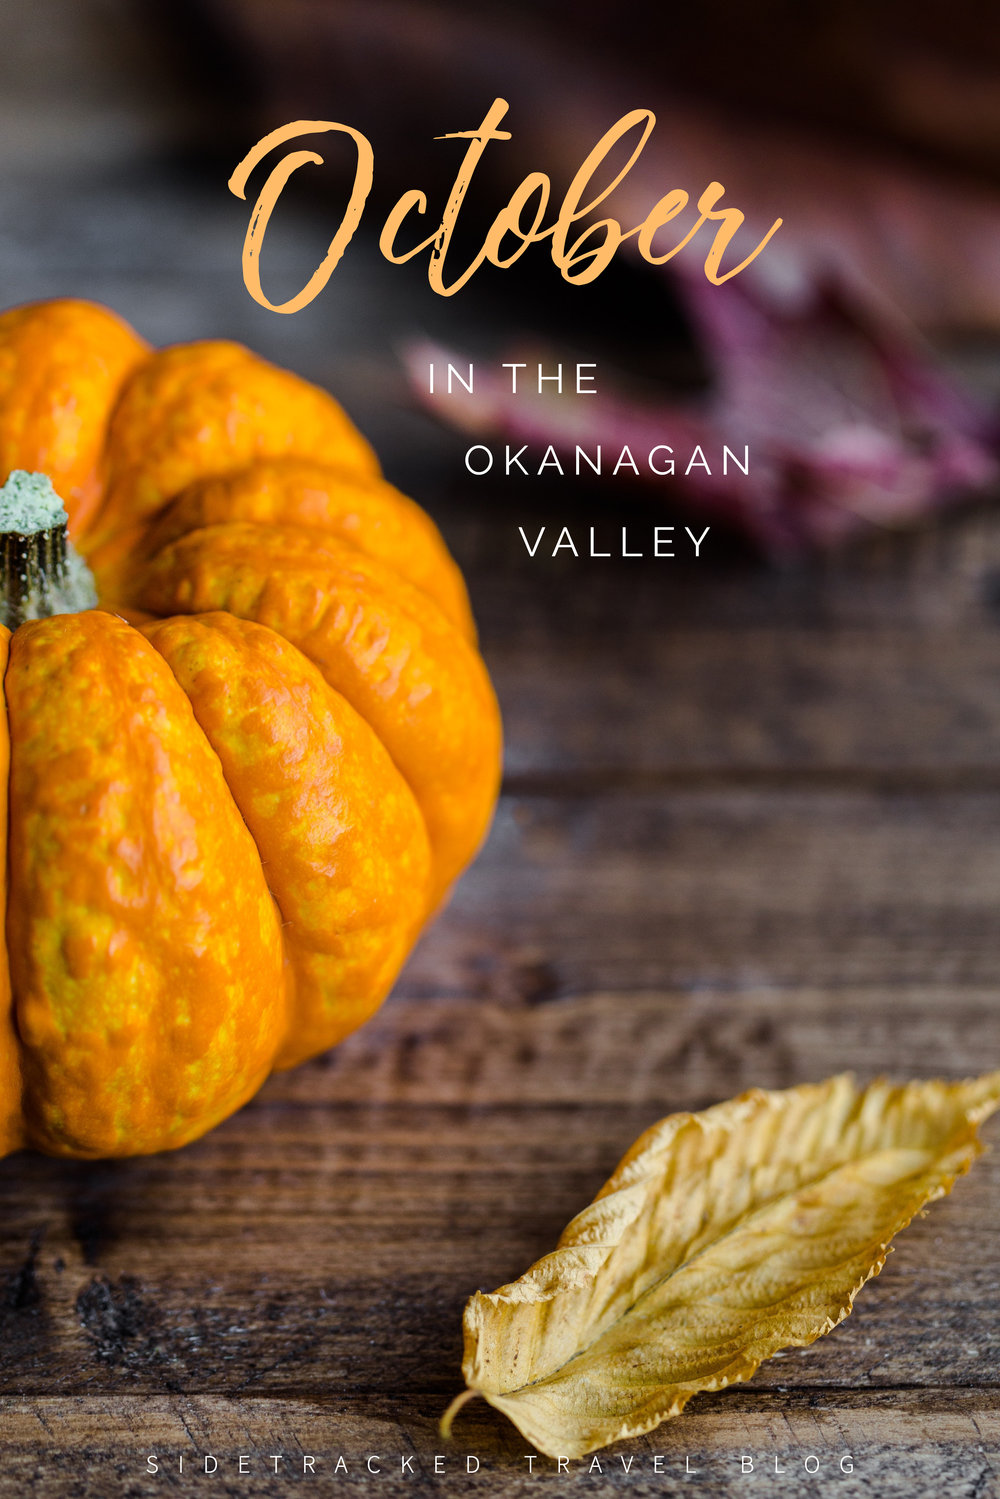 Looking for something to do in the Okanagan Valley this October? In this article you'll find a curated list of unique activities, event happenings, and other fun things taking place from now until the end of the month.